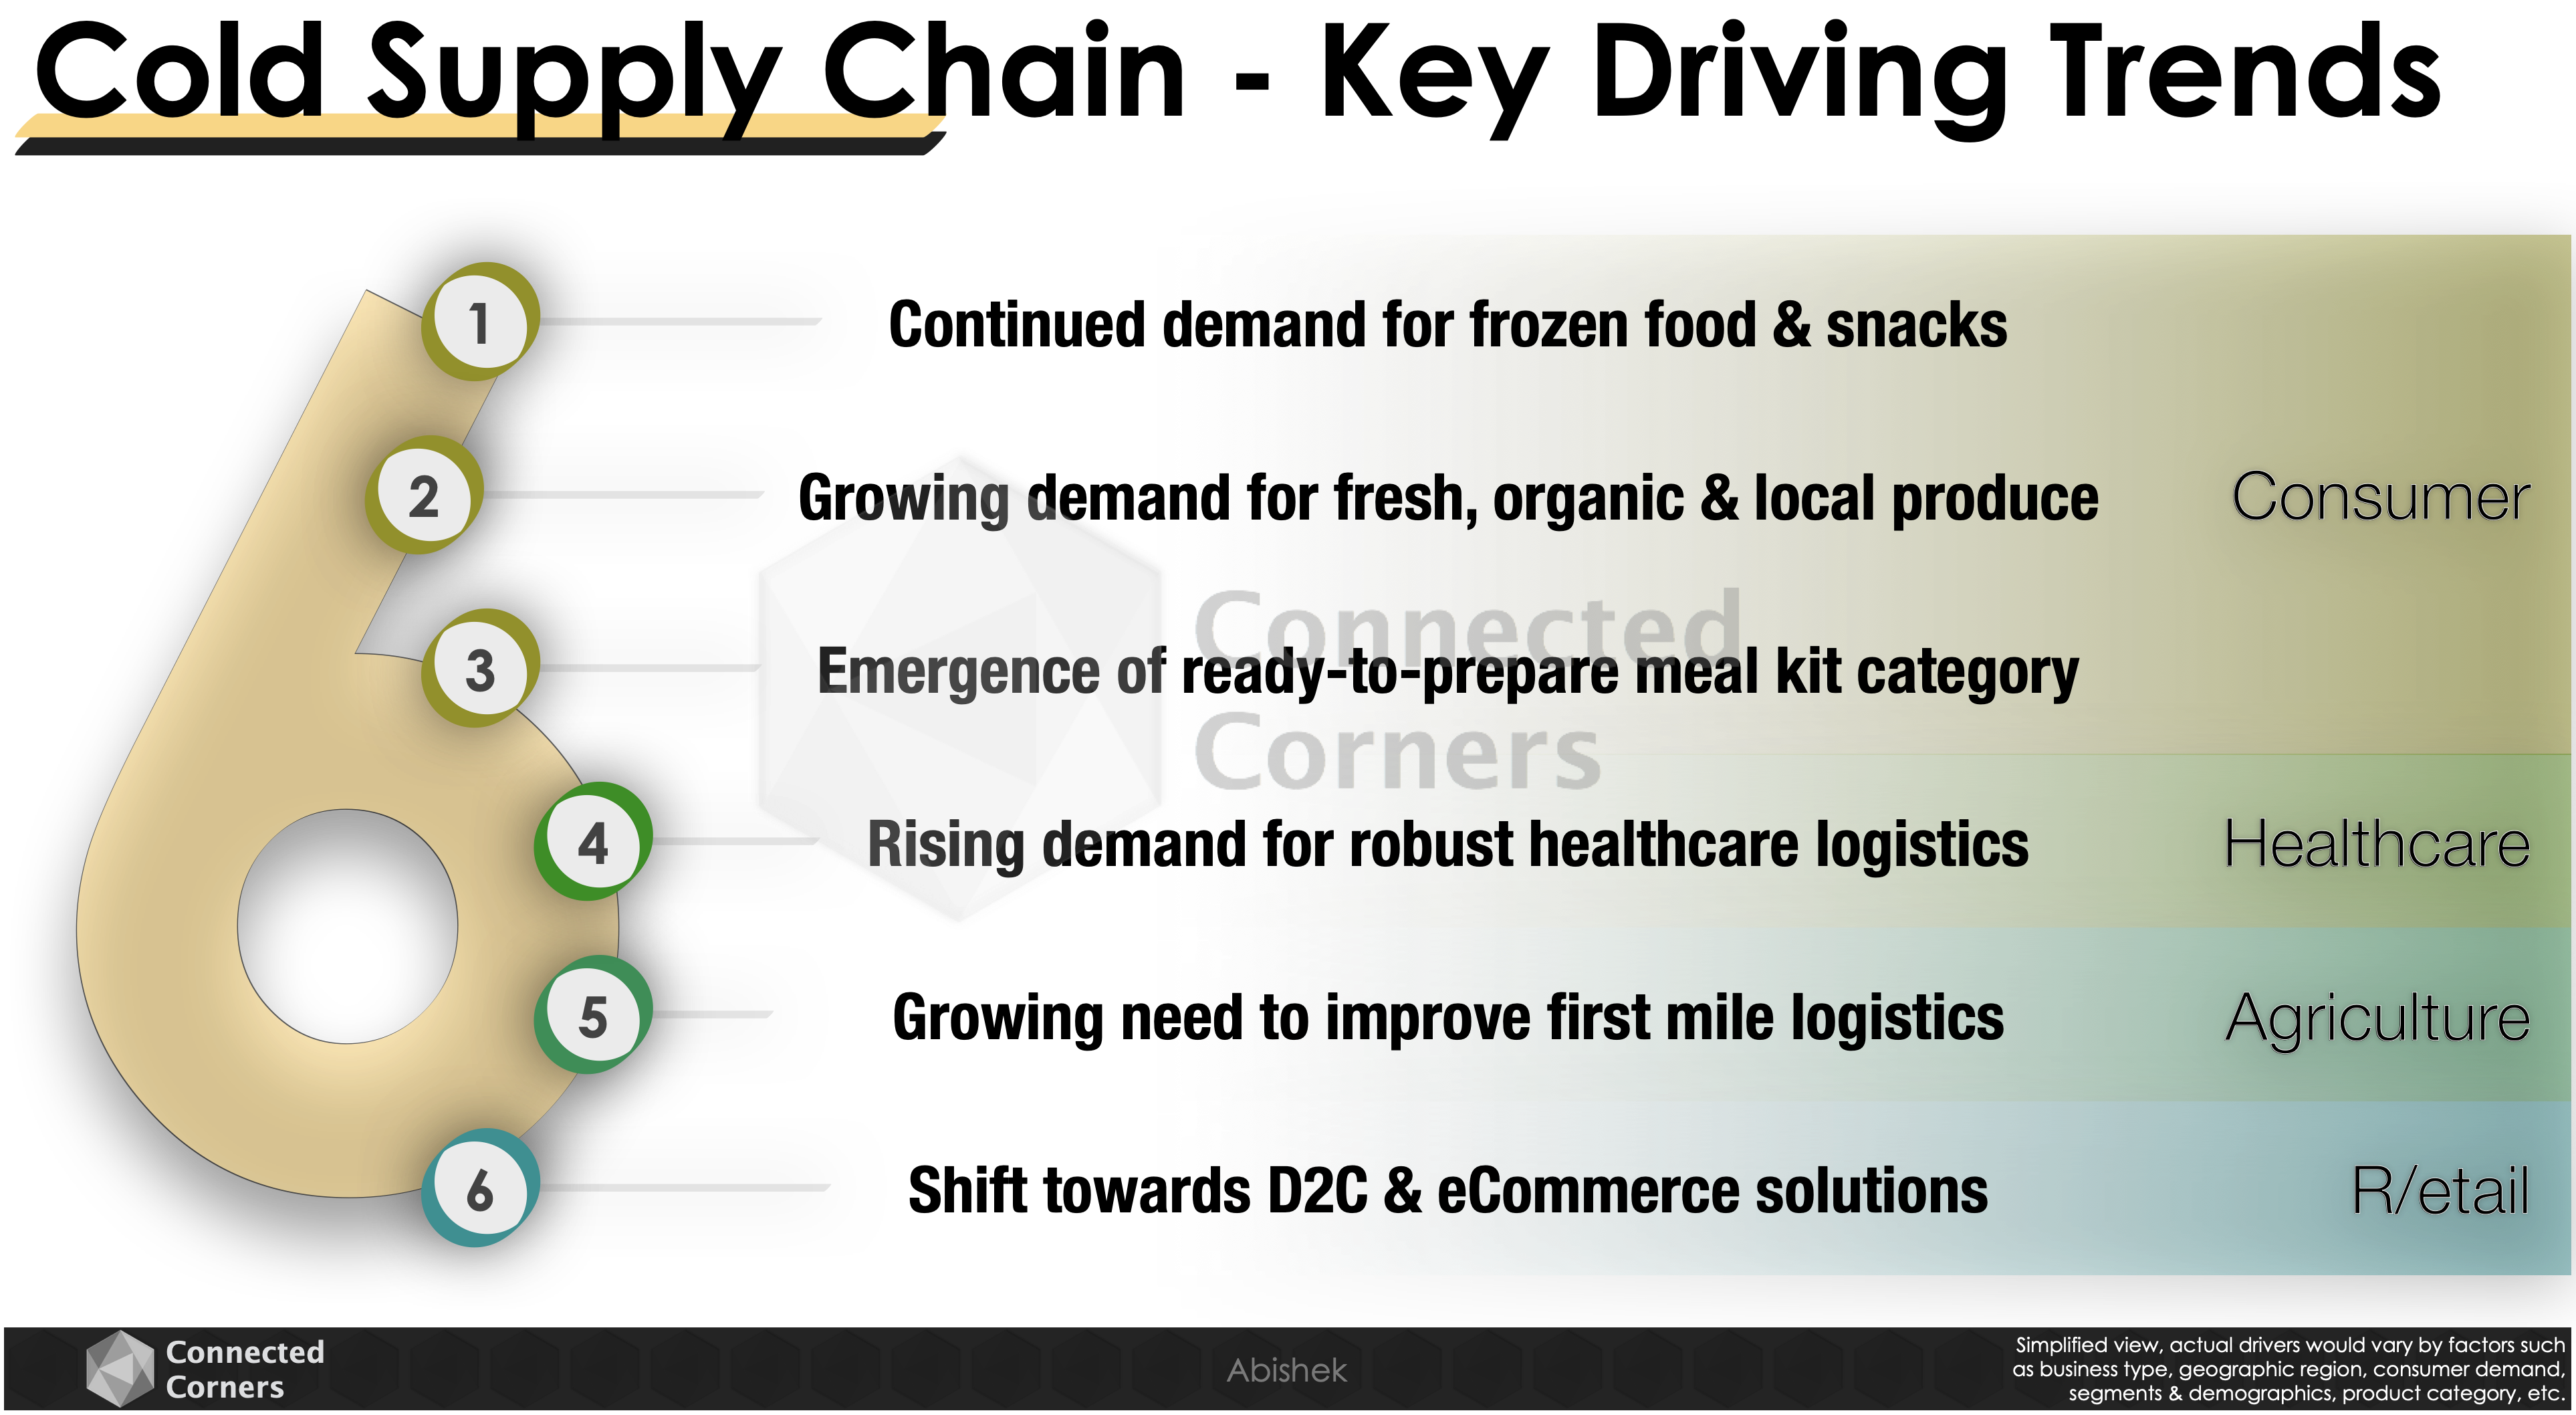 Cold Supply Chain - Key Driving Trends